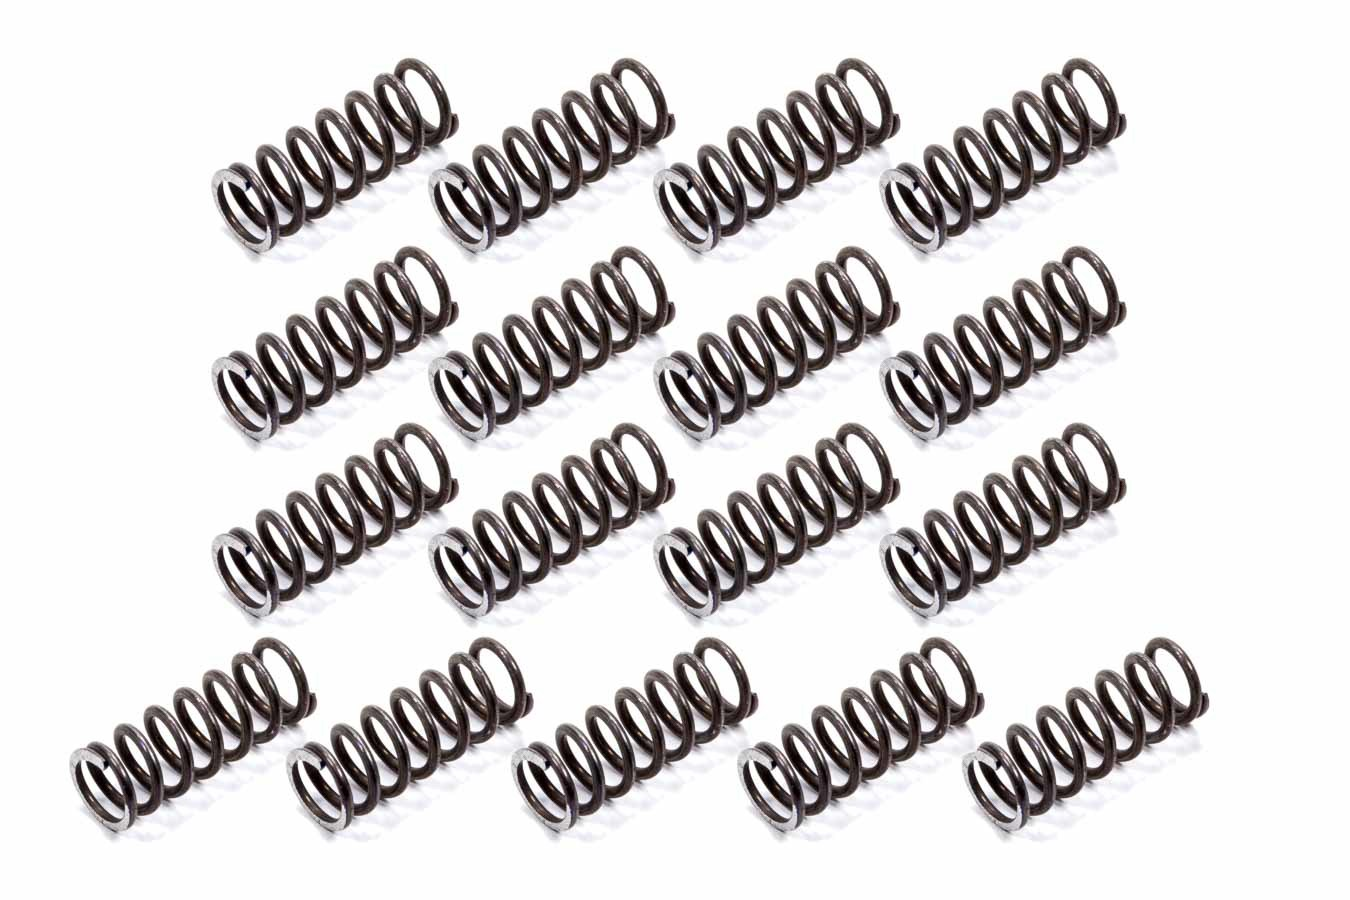 Tsr Racing Products P/G HD Reverse Springs